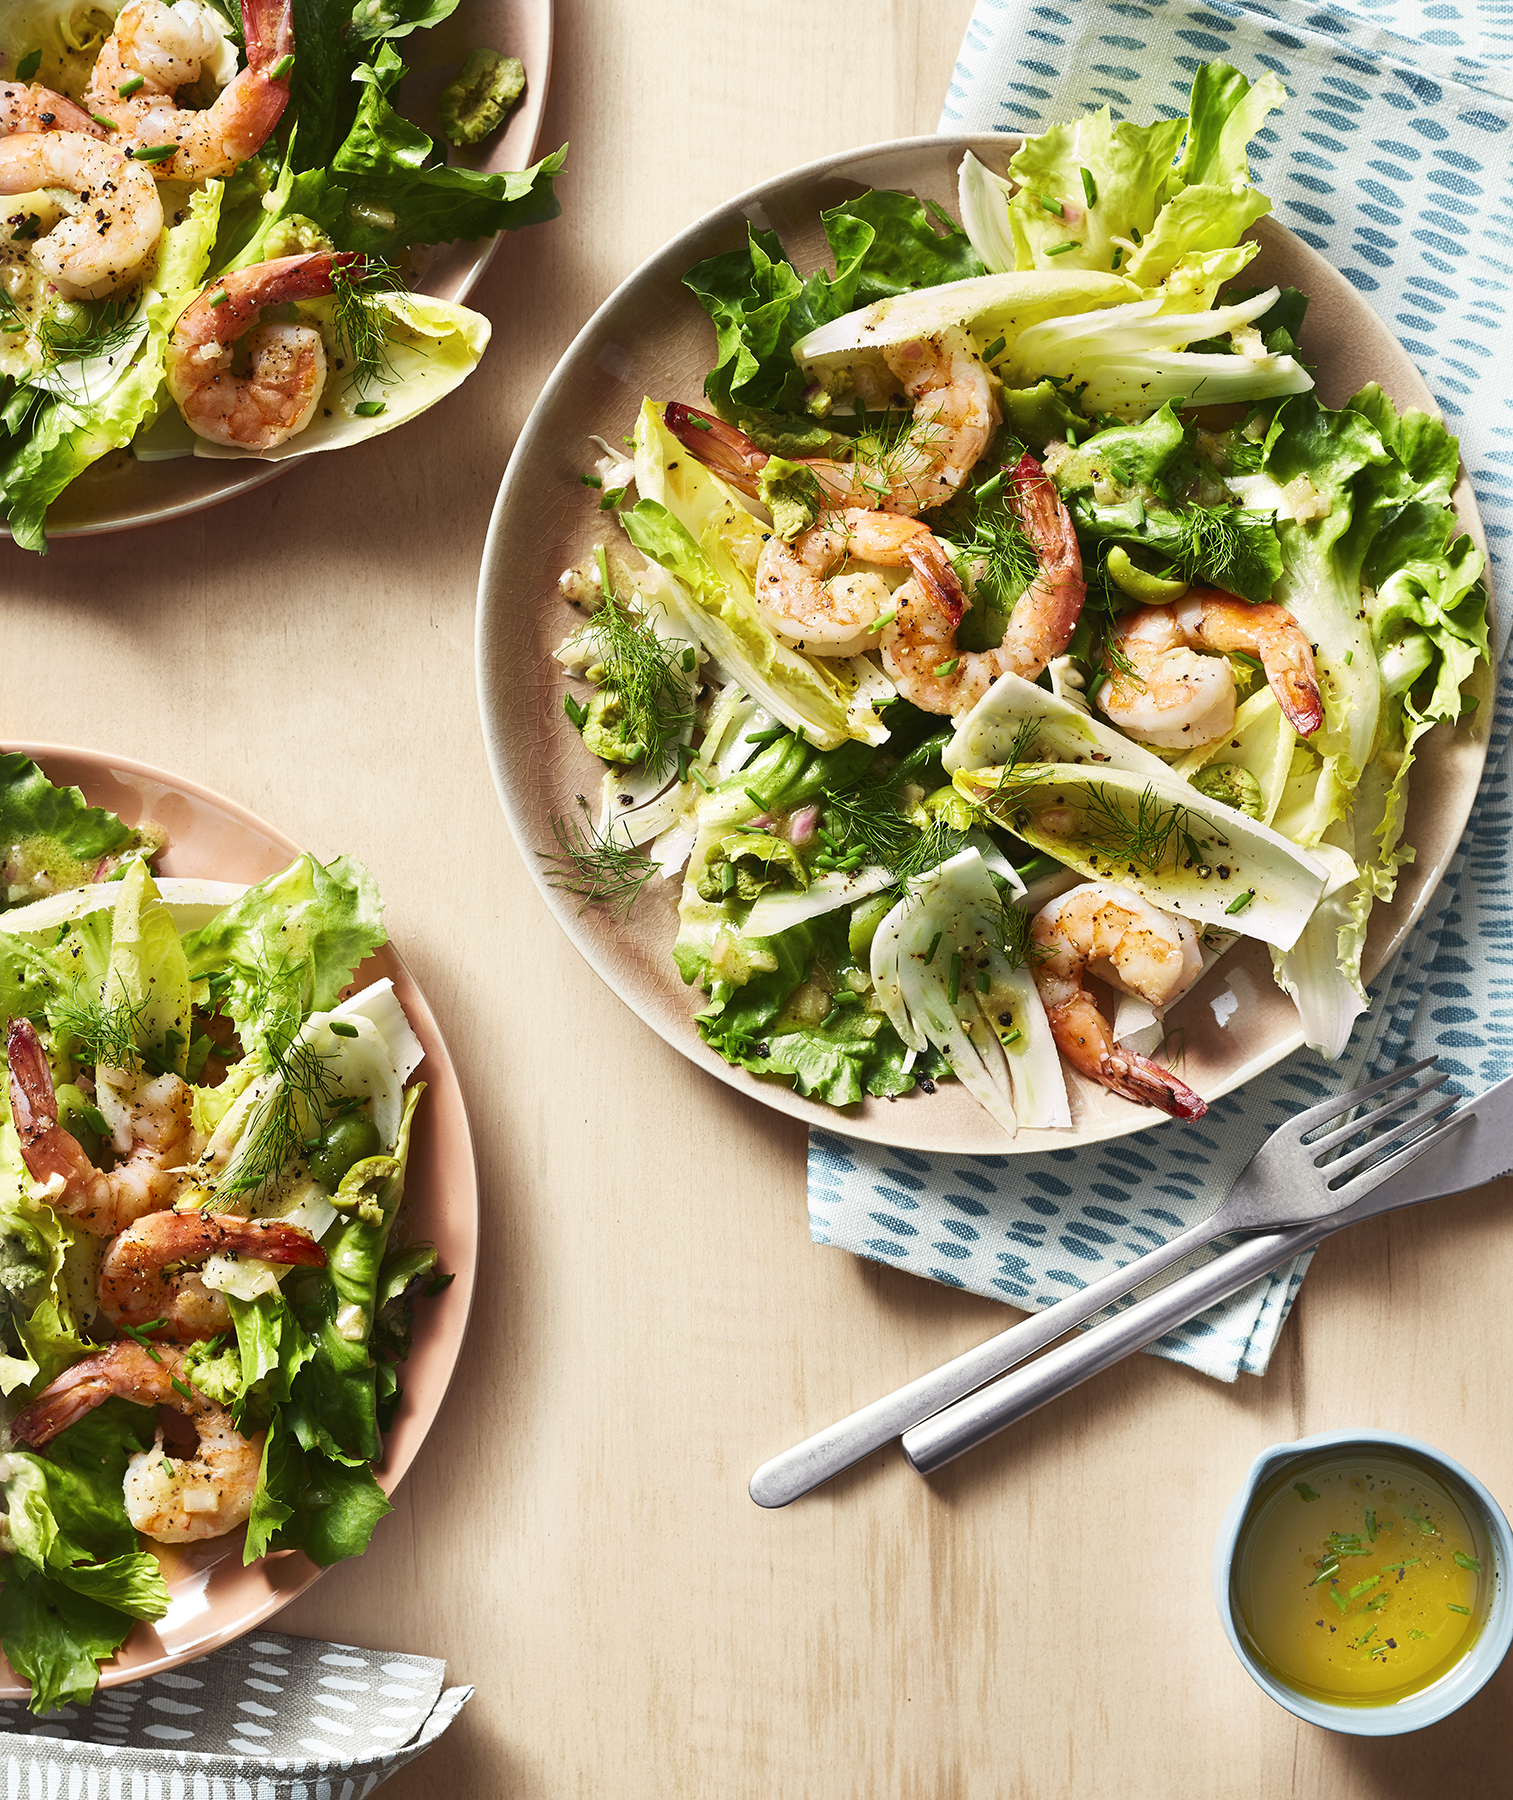 Shrimp, Escarole and Fennel Salad With Olive-Herb Dressing